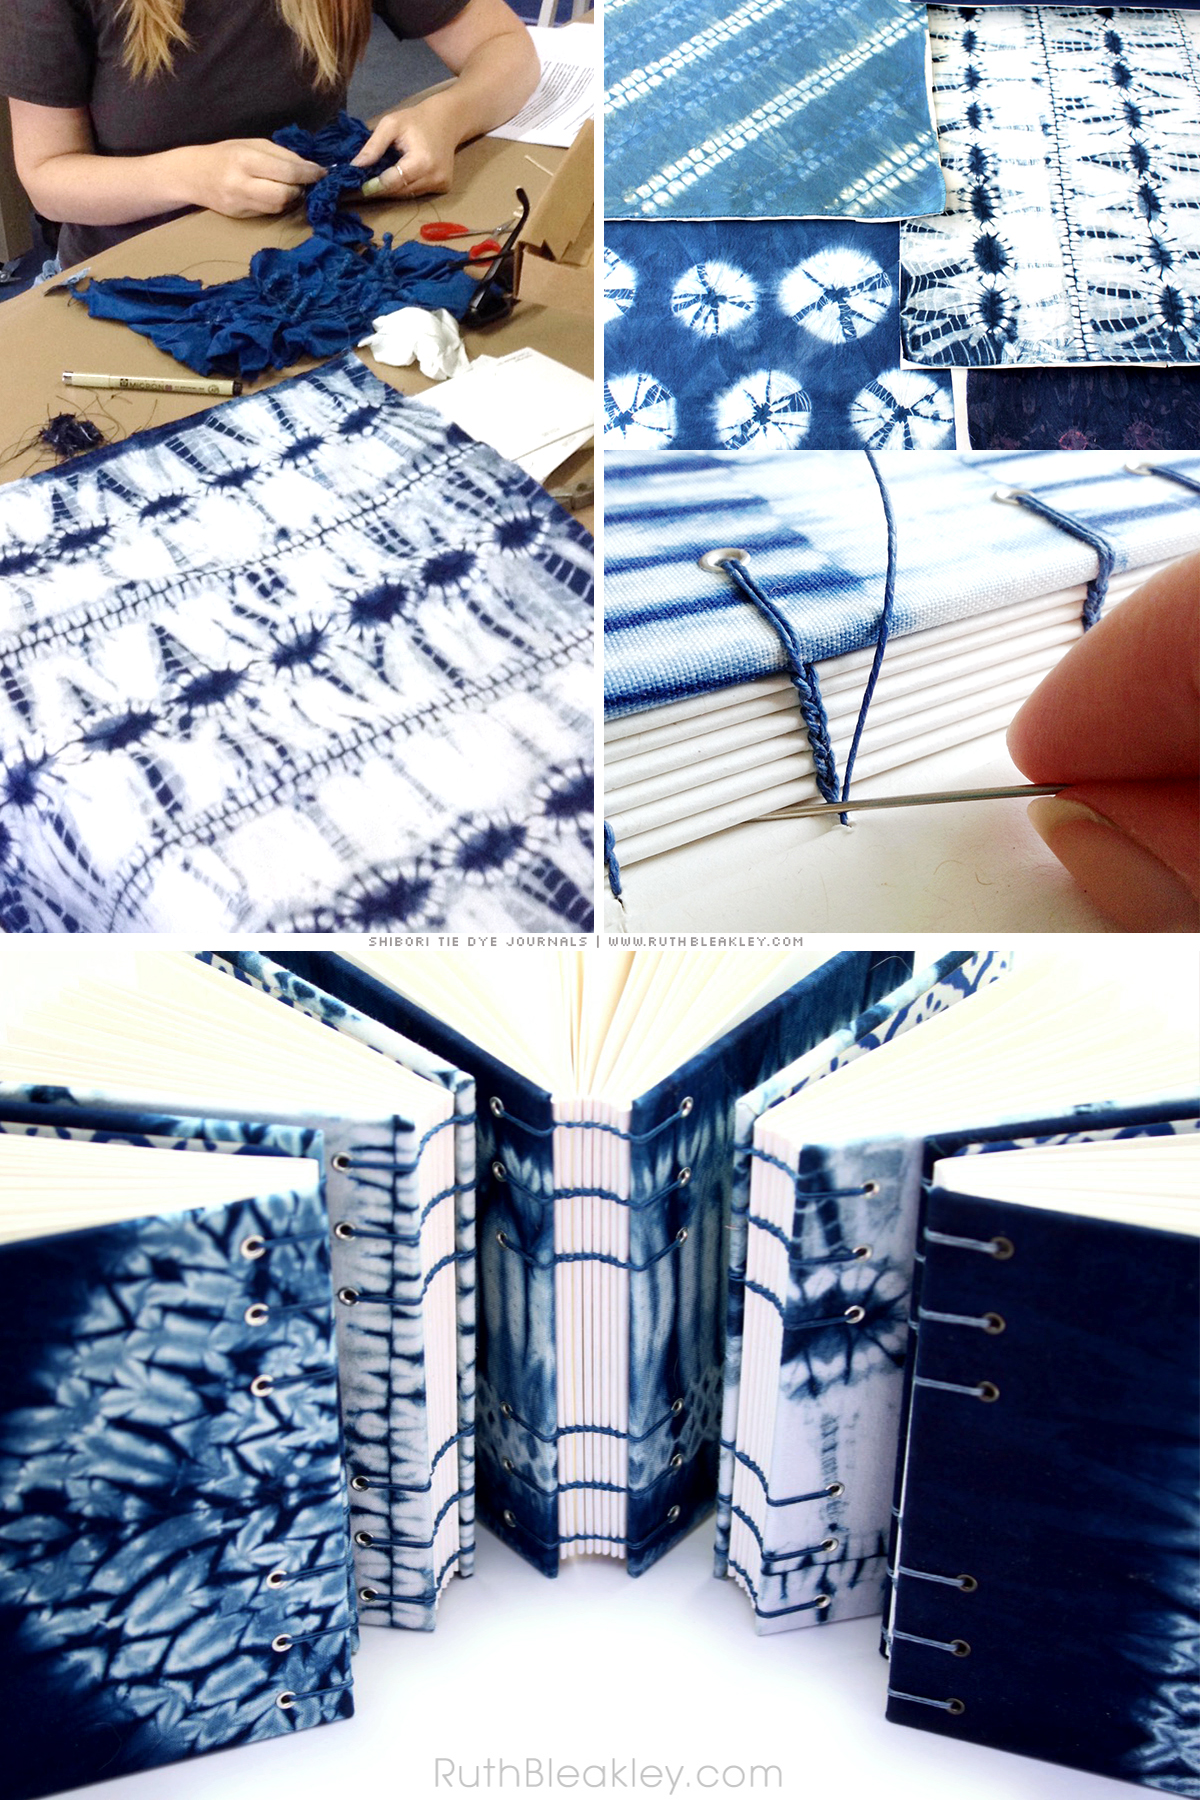 Shibori Tie Dye Journals made by Florida book artist Ruth Bleakley